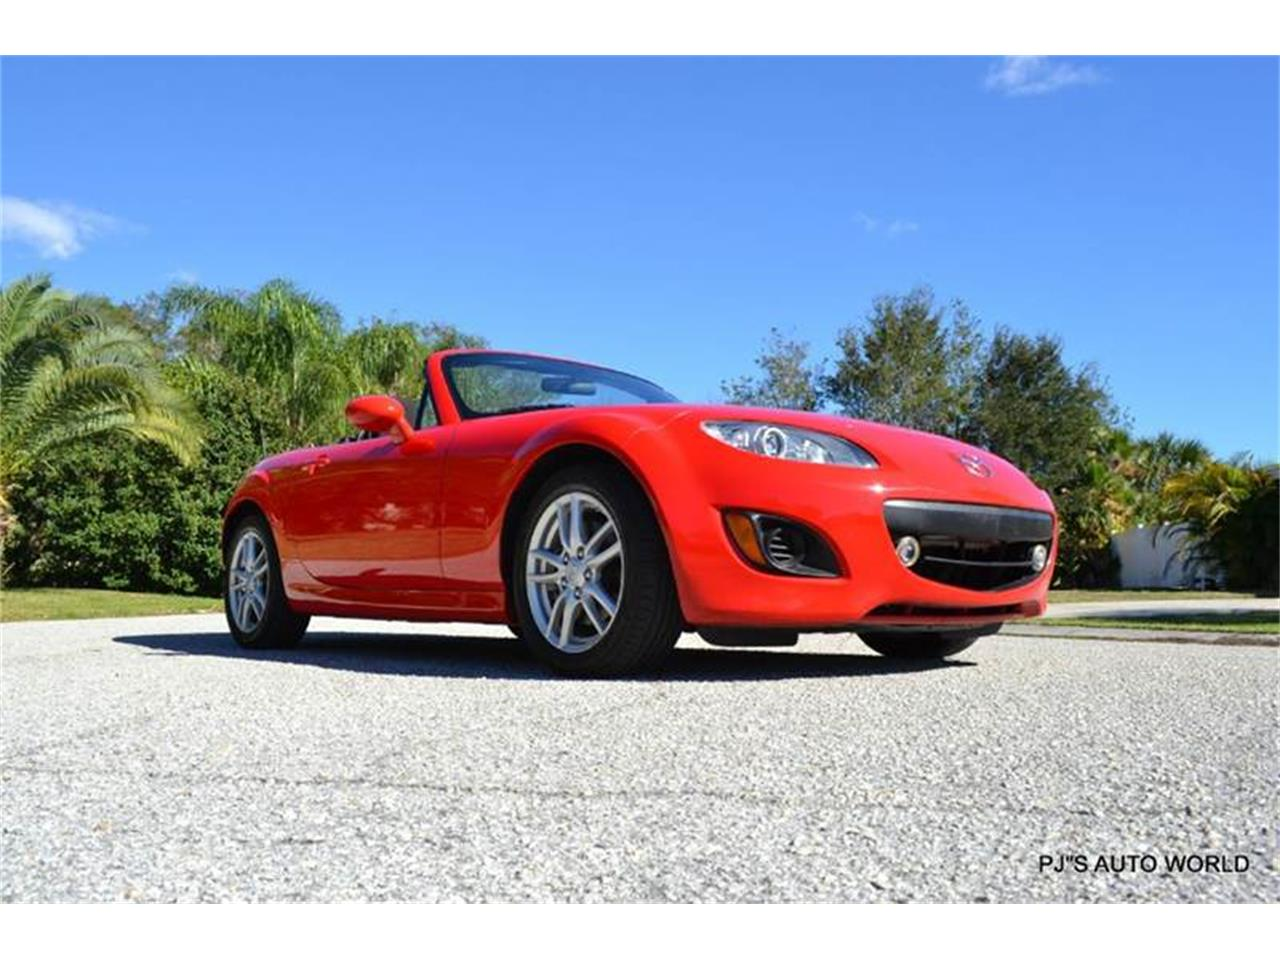 Large Picture of '11 Mazda Miata located in Clearwater Florida - $11,800.00 - KHZE